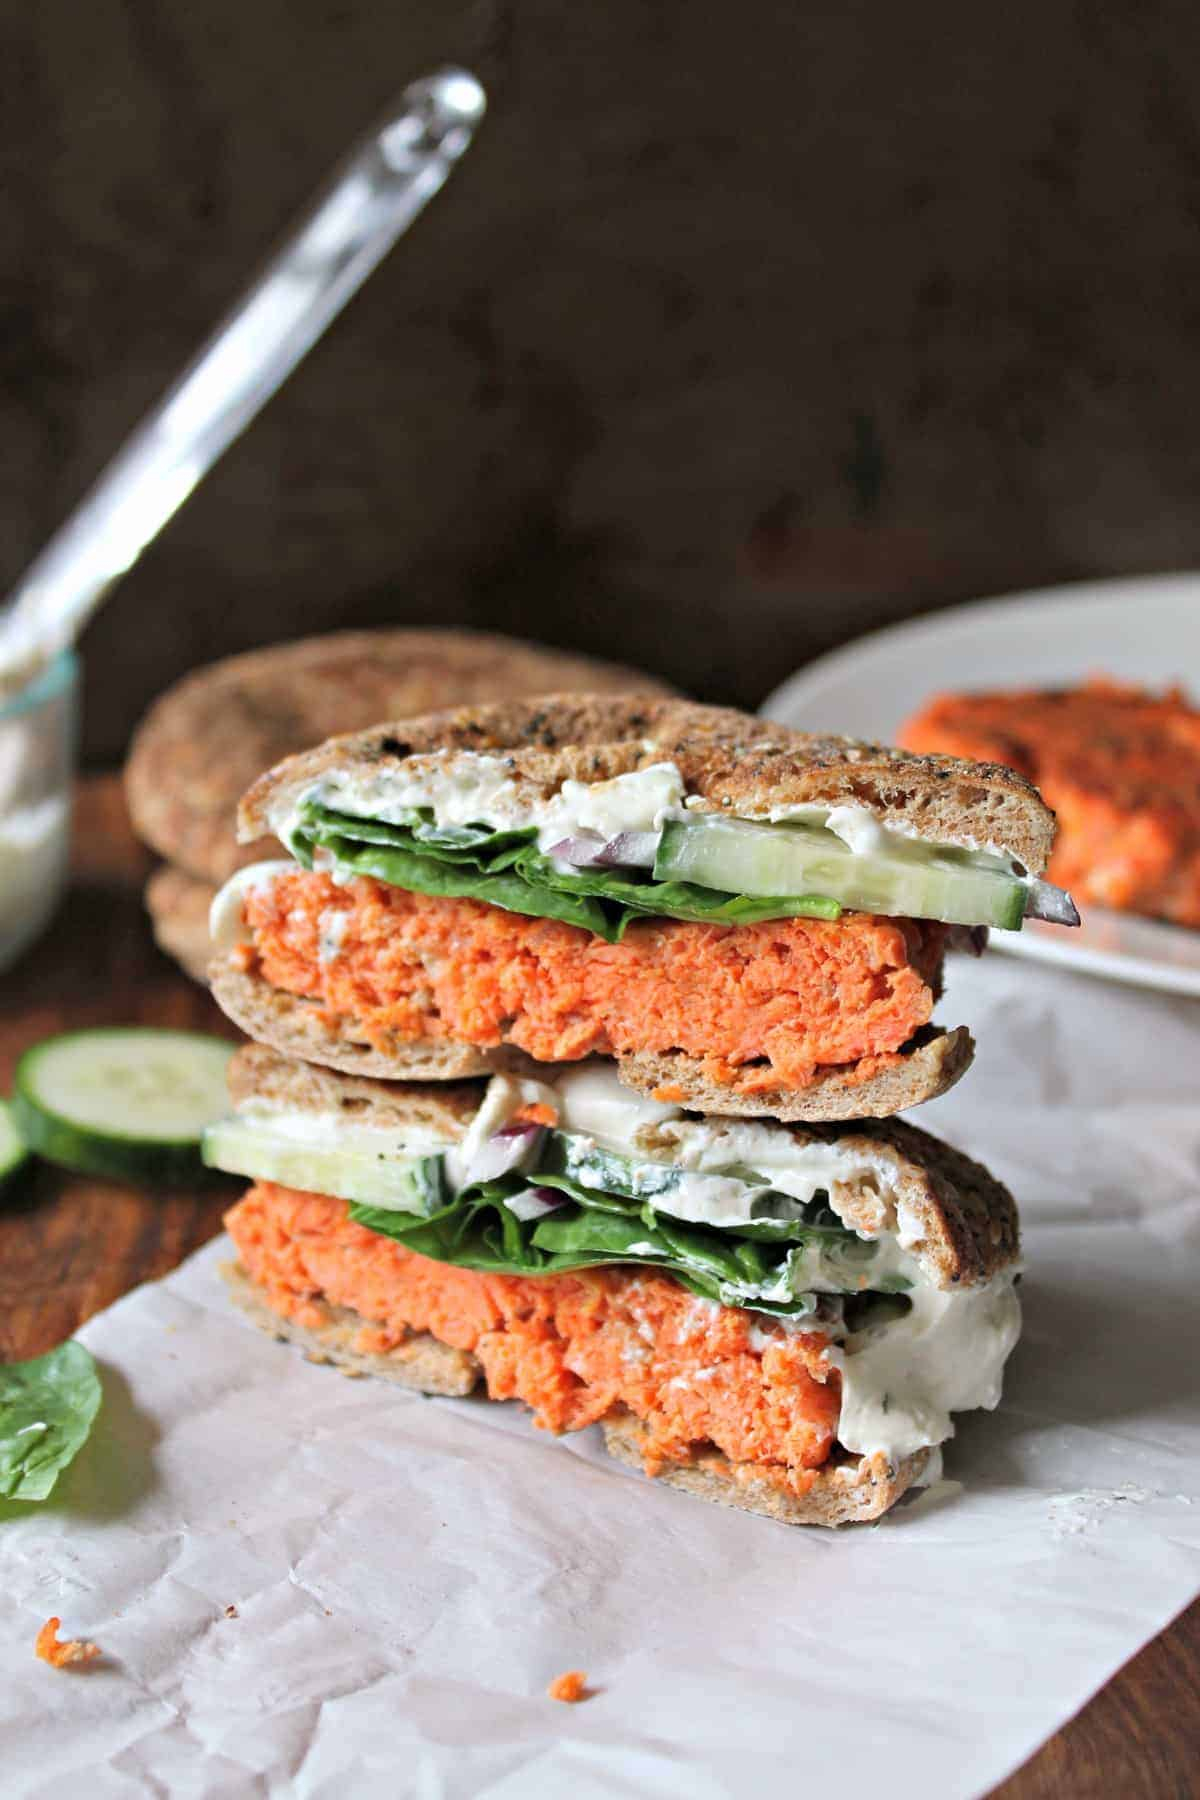 """Smoky Salmon Bagel Burger with Garlic-Dill Schmear! Love bagels and lox? You'll go """"wild"""" over these simply gratifying salmon burgers made with wild-caught Alaska salmon. They're a quick, versatile bite that works for brunch, lunch or dinner!"""